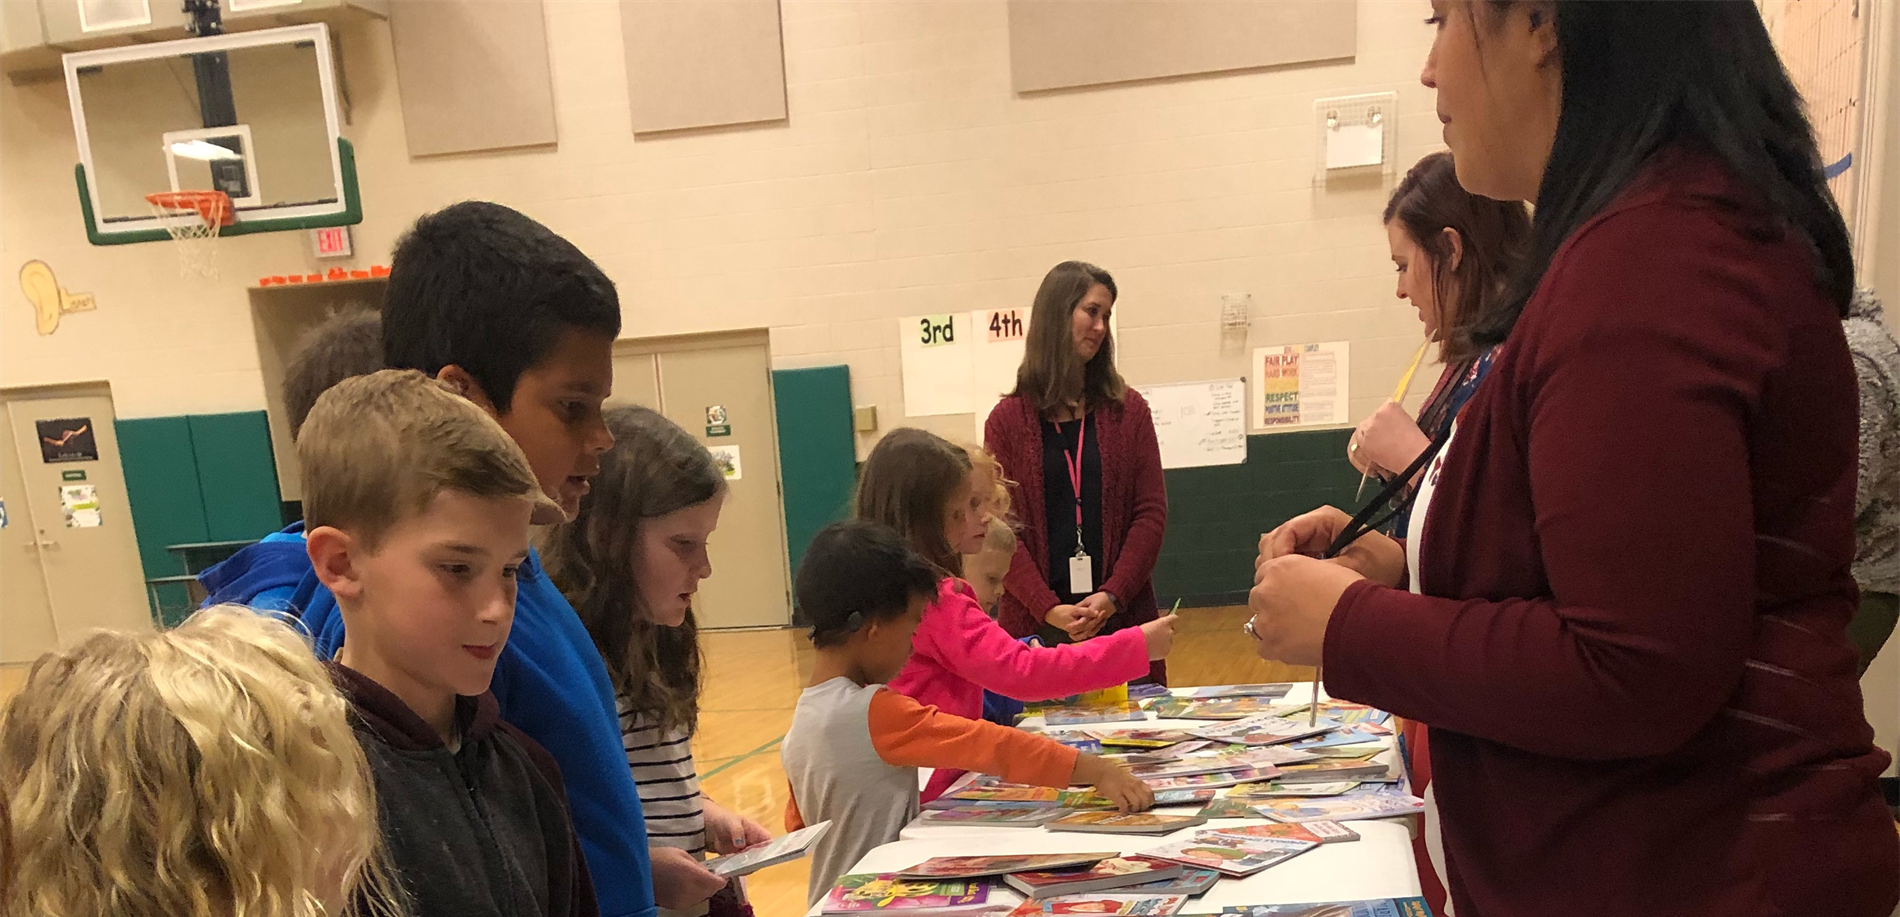 Students selecting books at table